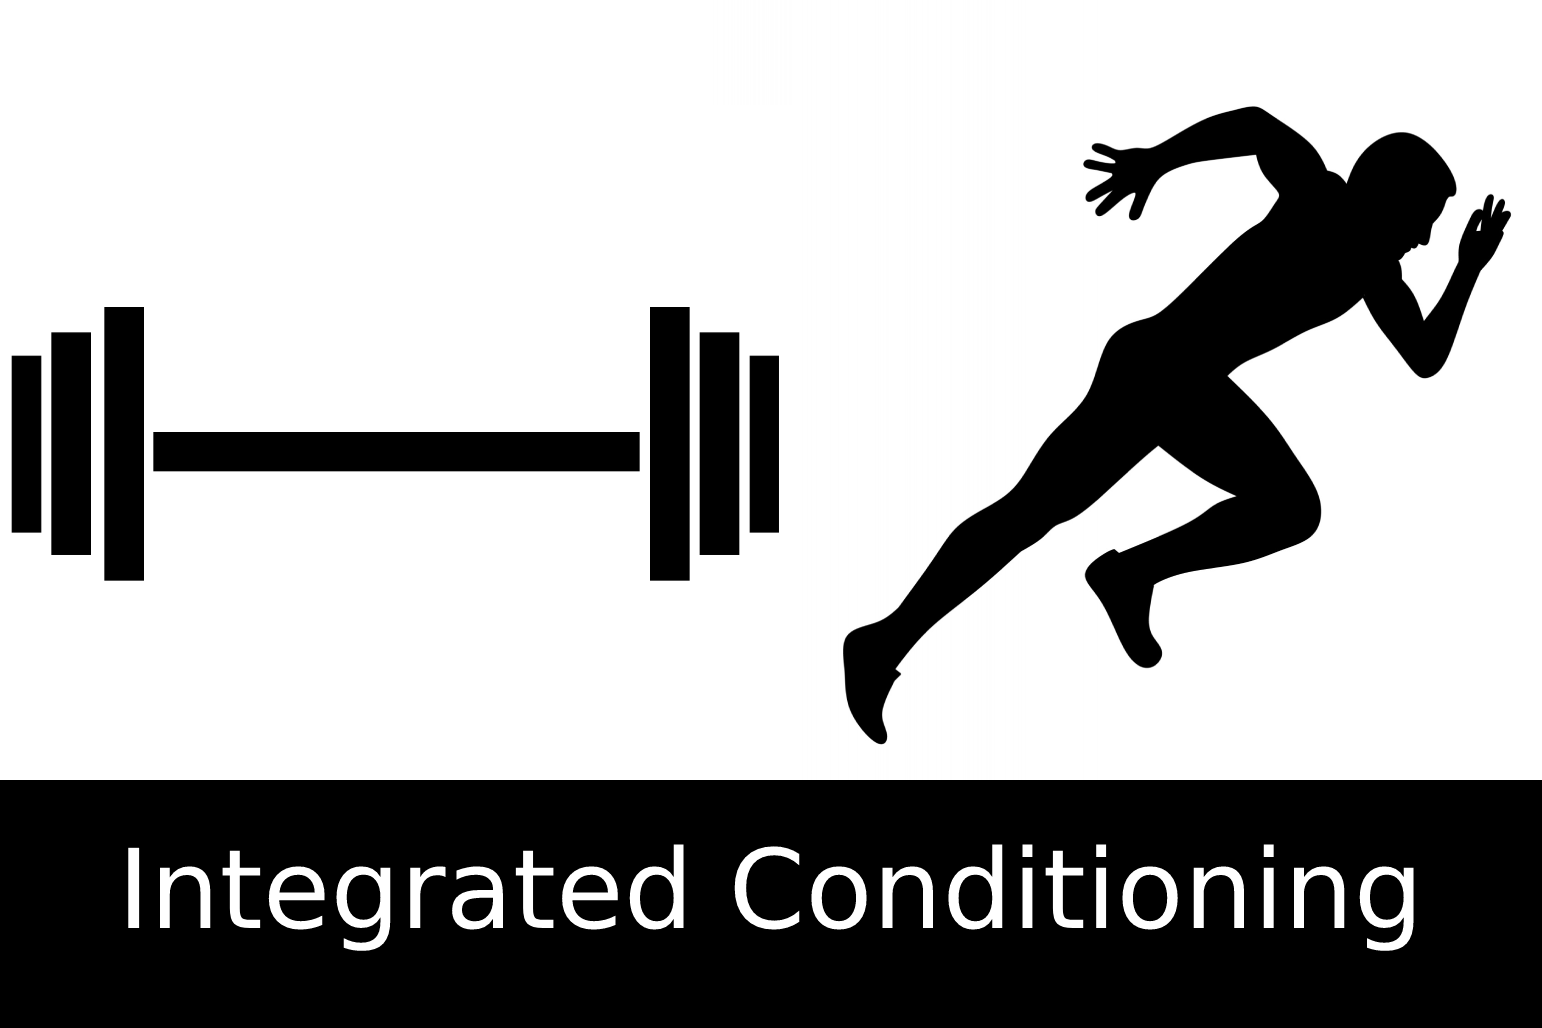 barbell, sprinter; integrated conditioning